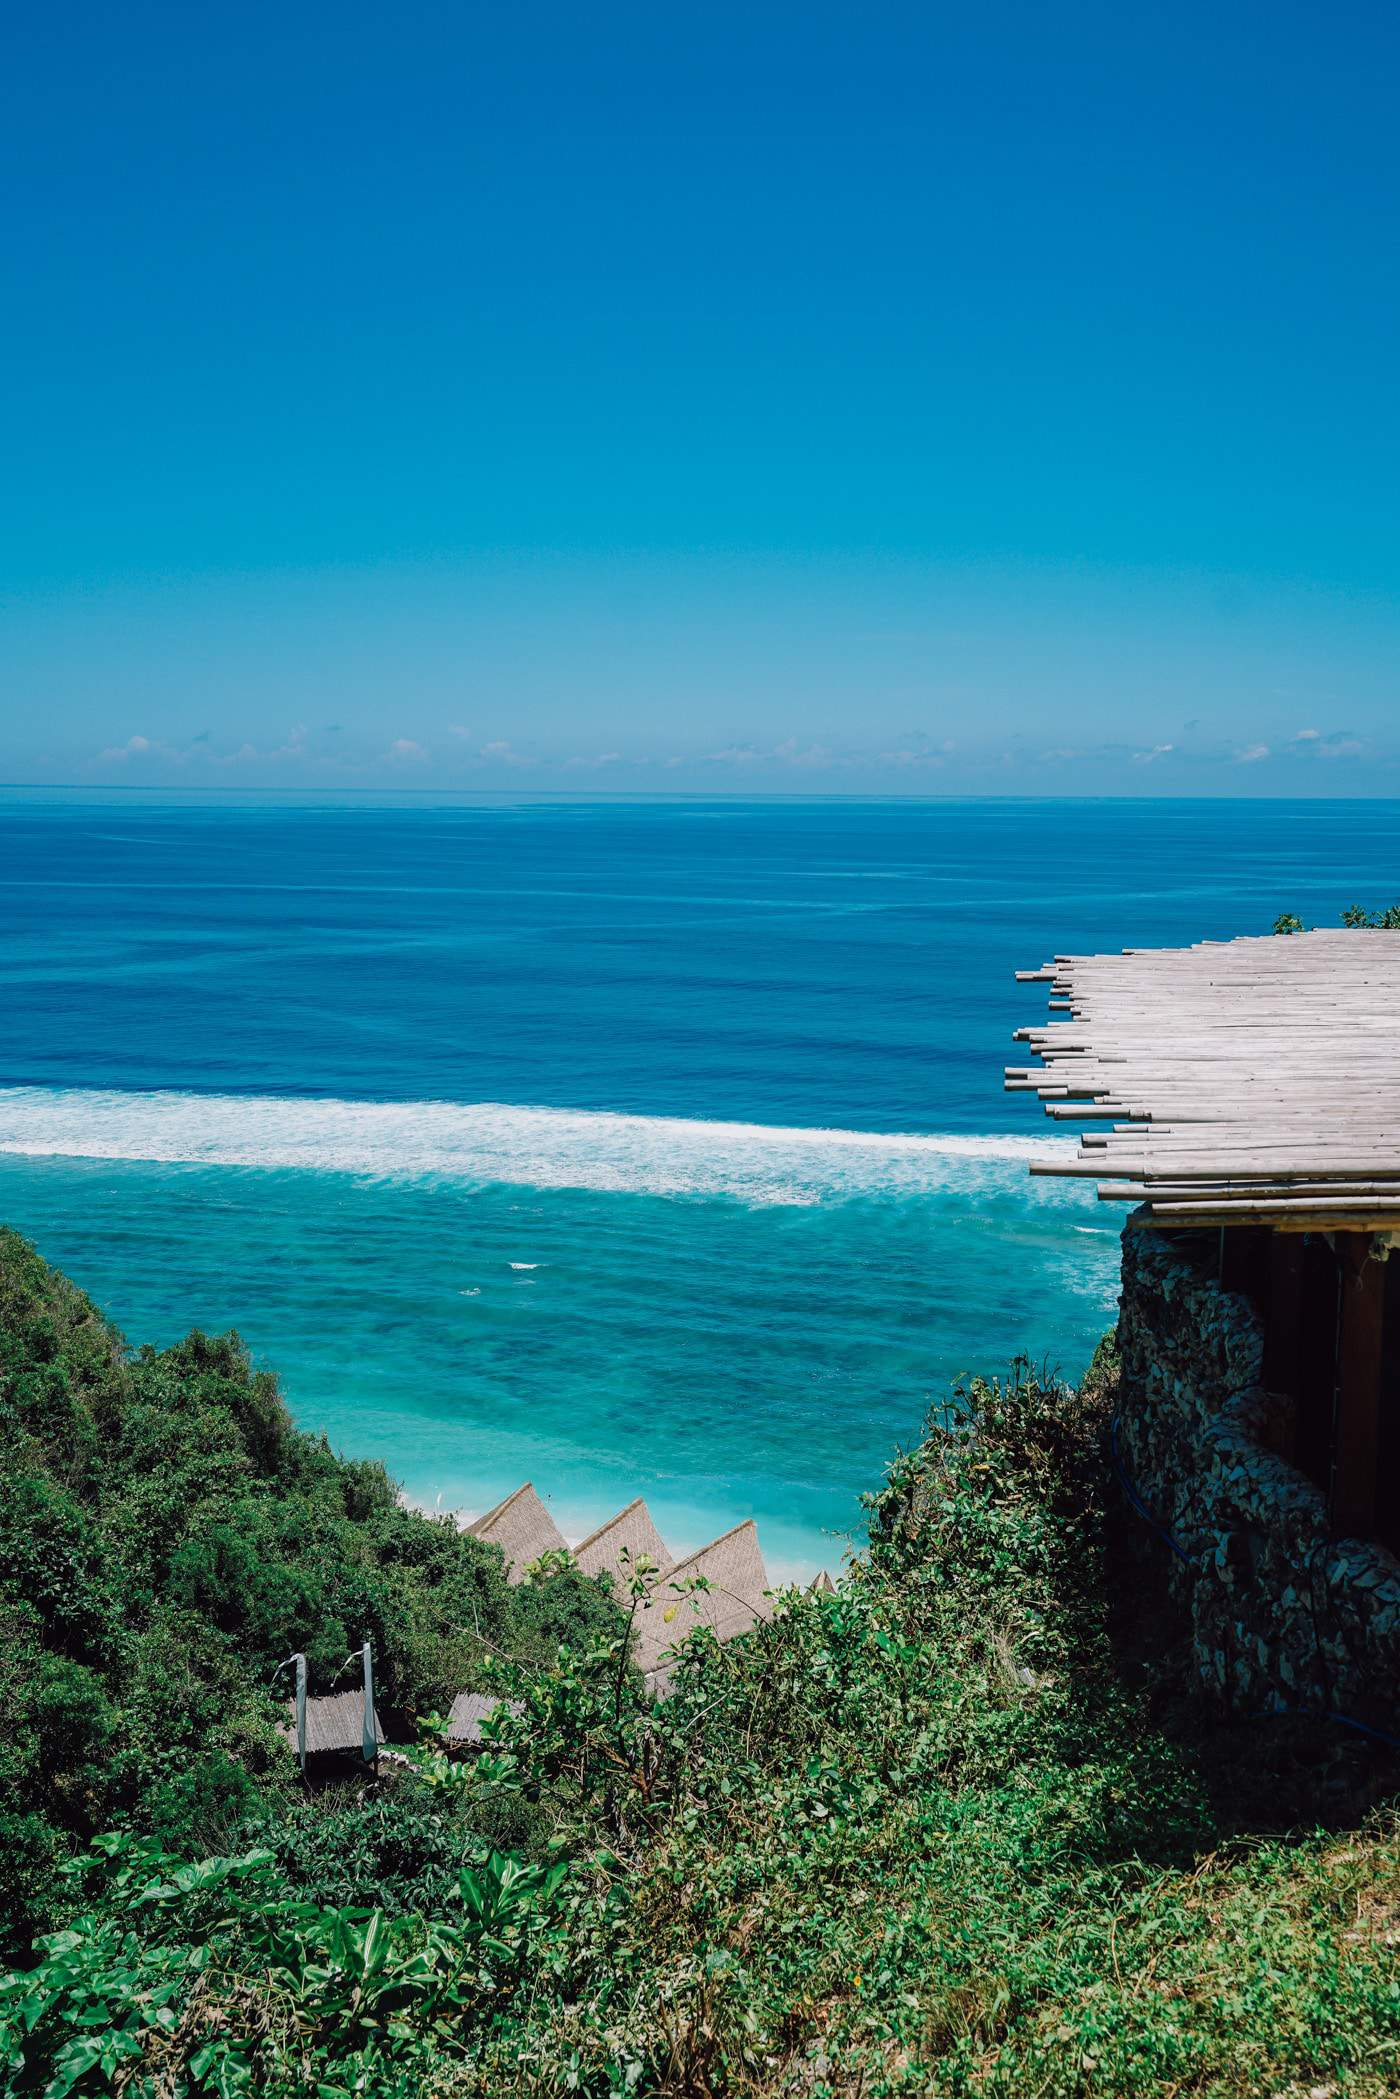 Looking for the best Bali beach clubs? We have you covered! Today, we're giving an honest review of 5 of Bali most notable beach clubs across the island. Including Sundays Beach Club in Uluwatu Bali.